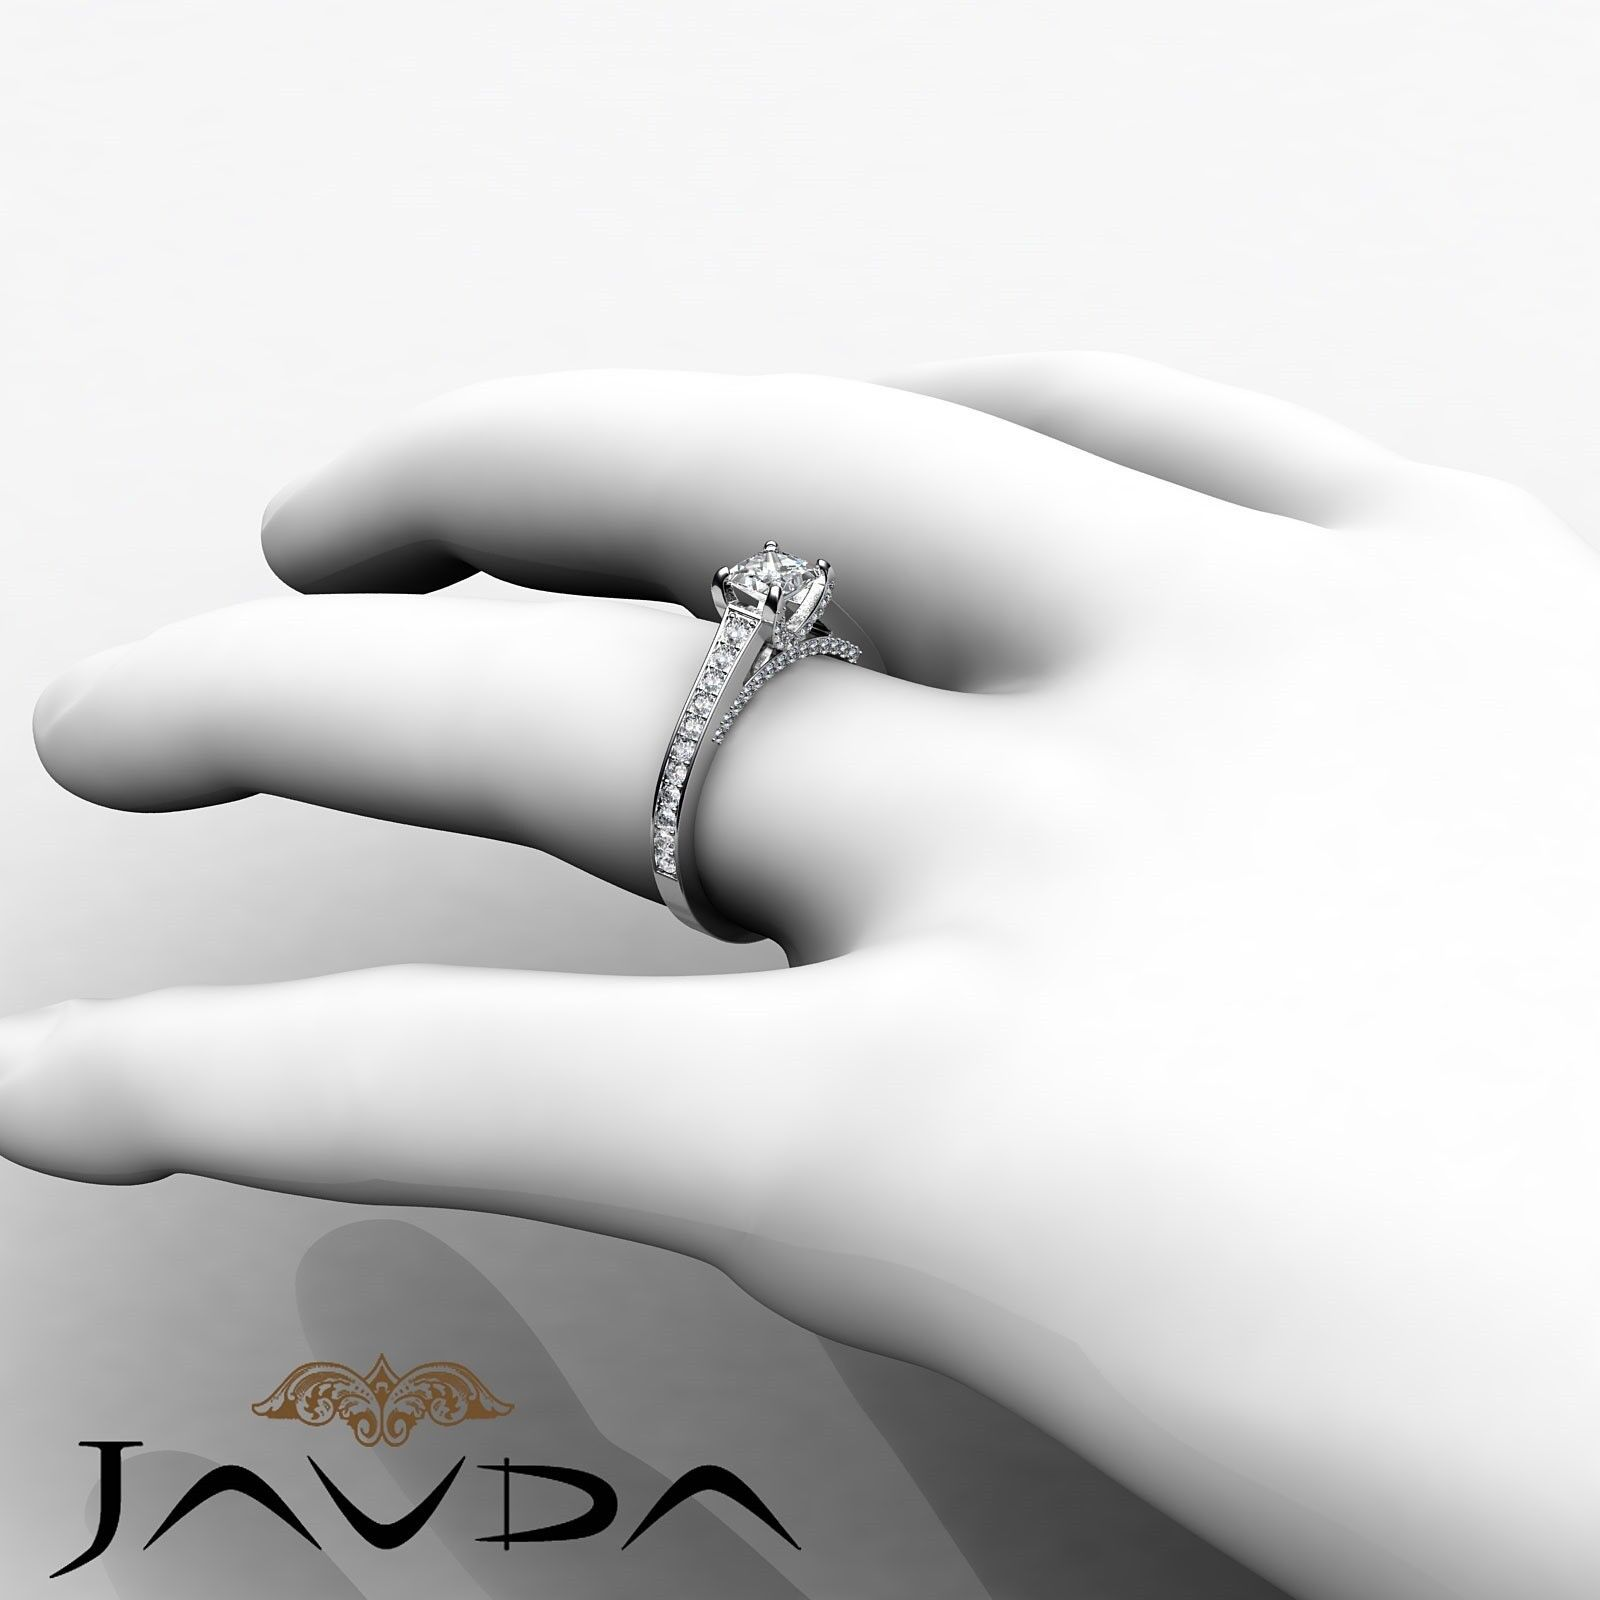 1.46ctw Tapered Pave Princess Diamond Engagement Ring GIA G-VS2 White Gold Rings 3